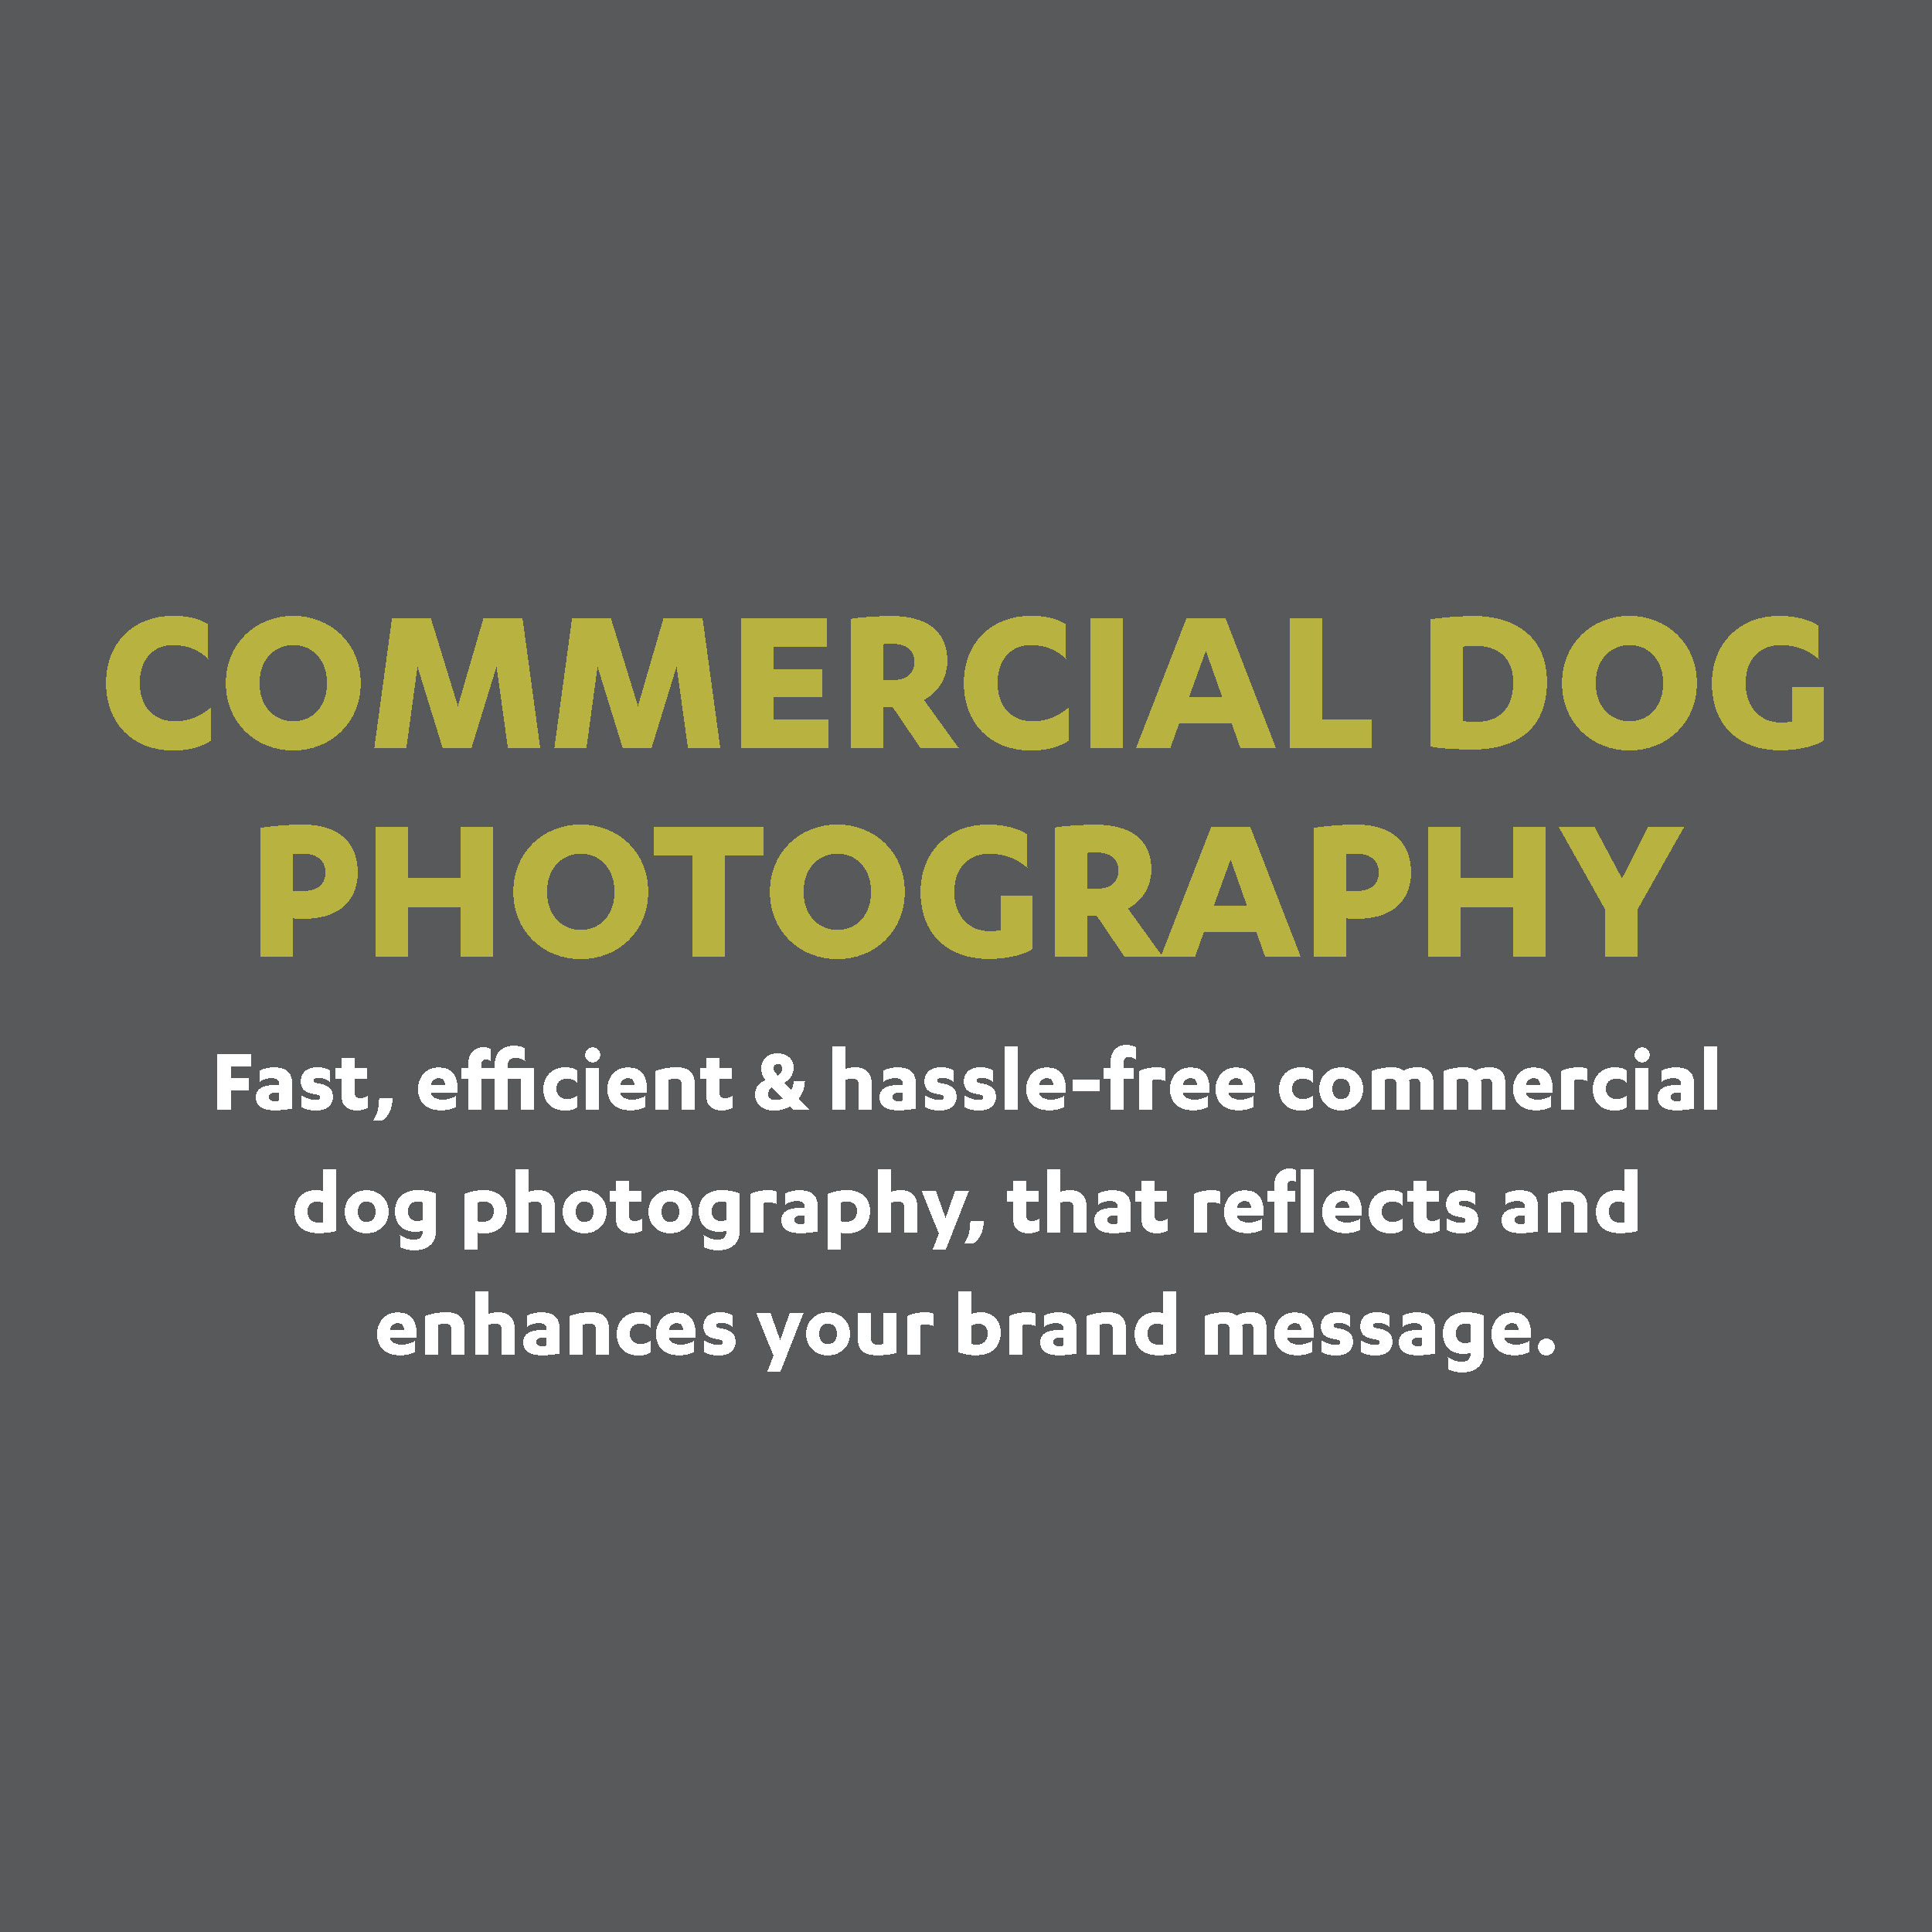 Commercial dog photography and stock images